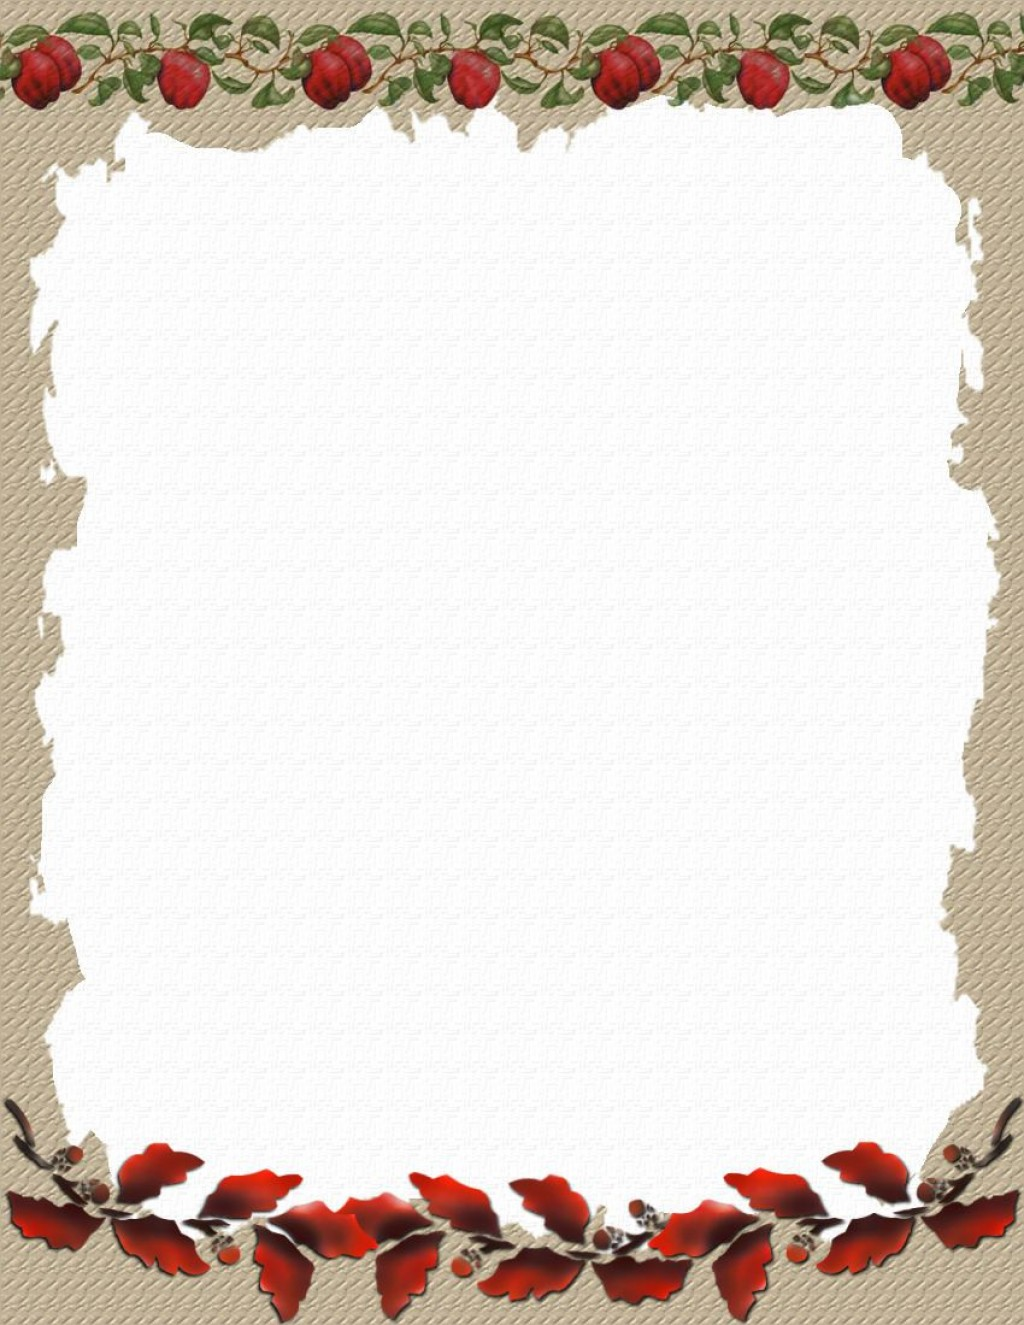 003 Stunning Stationary Template For Word Picture  Lined Stationery Free DownloadLarge